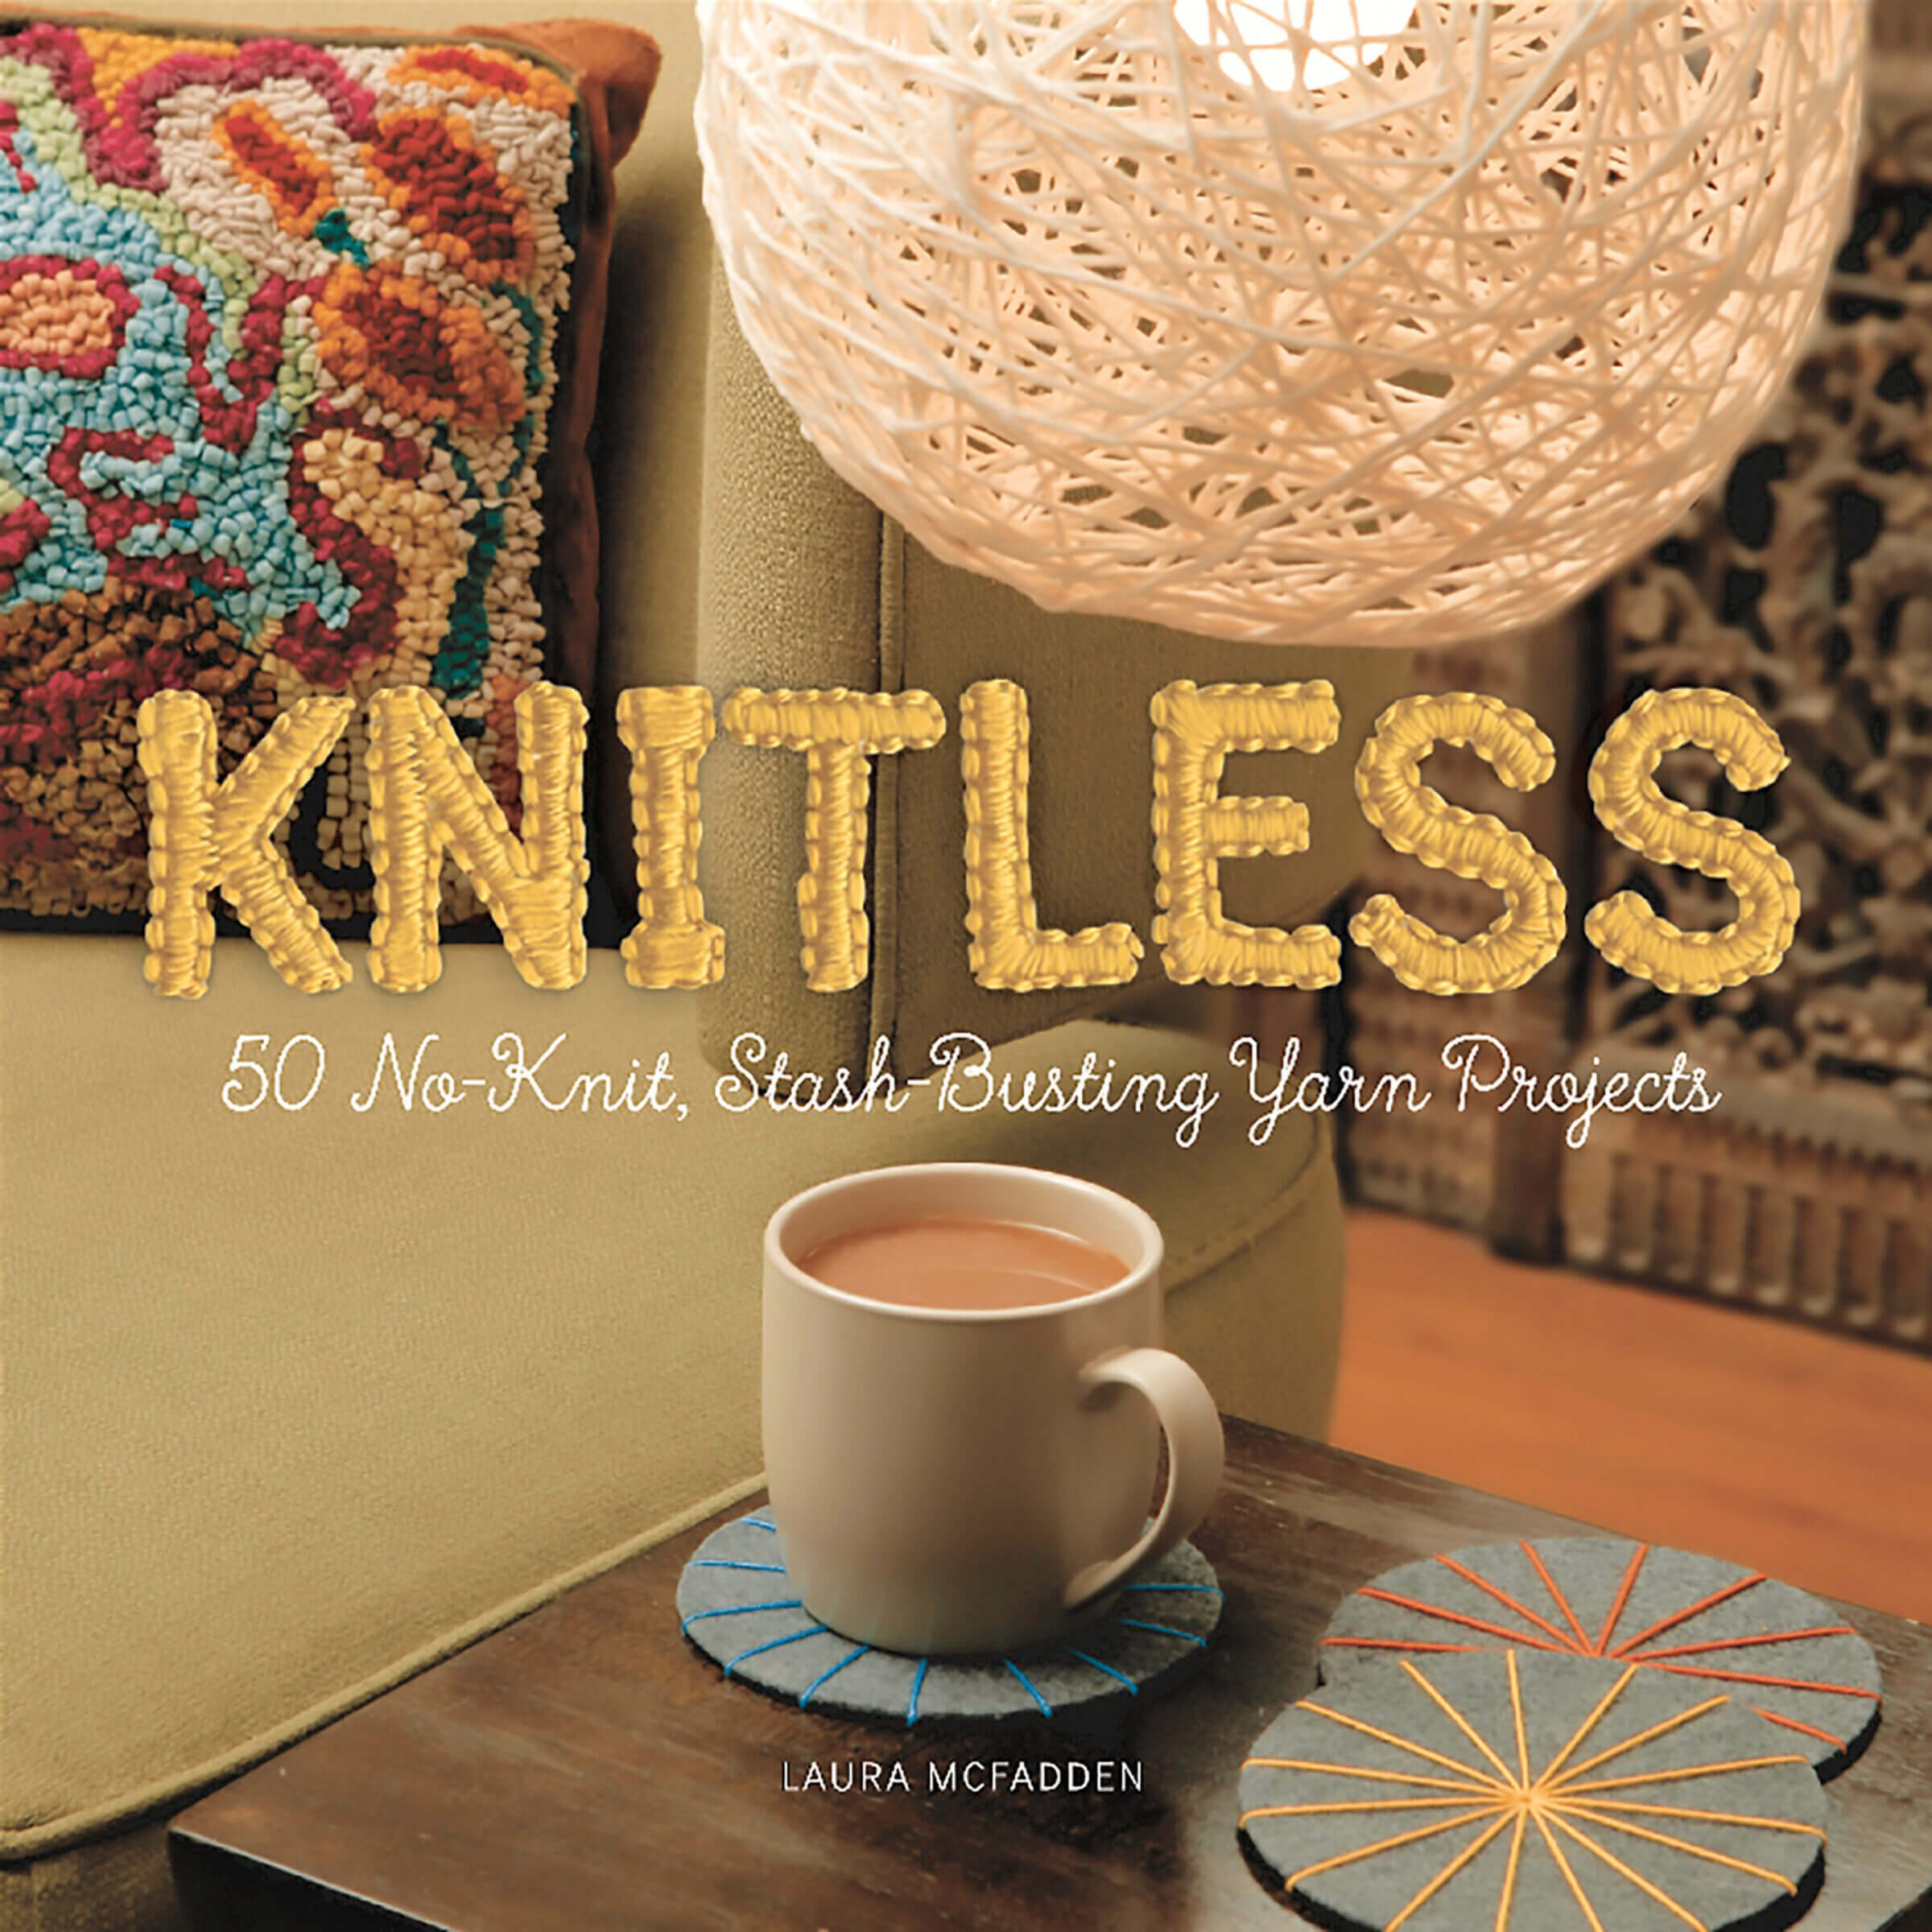 Knitless book cover image